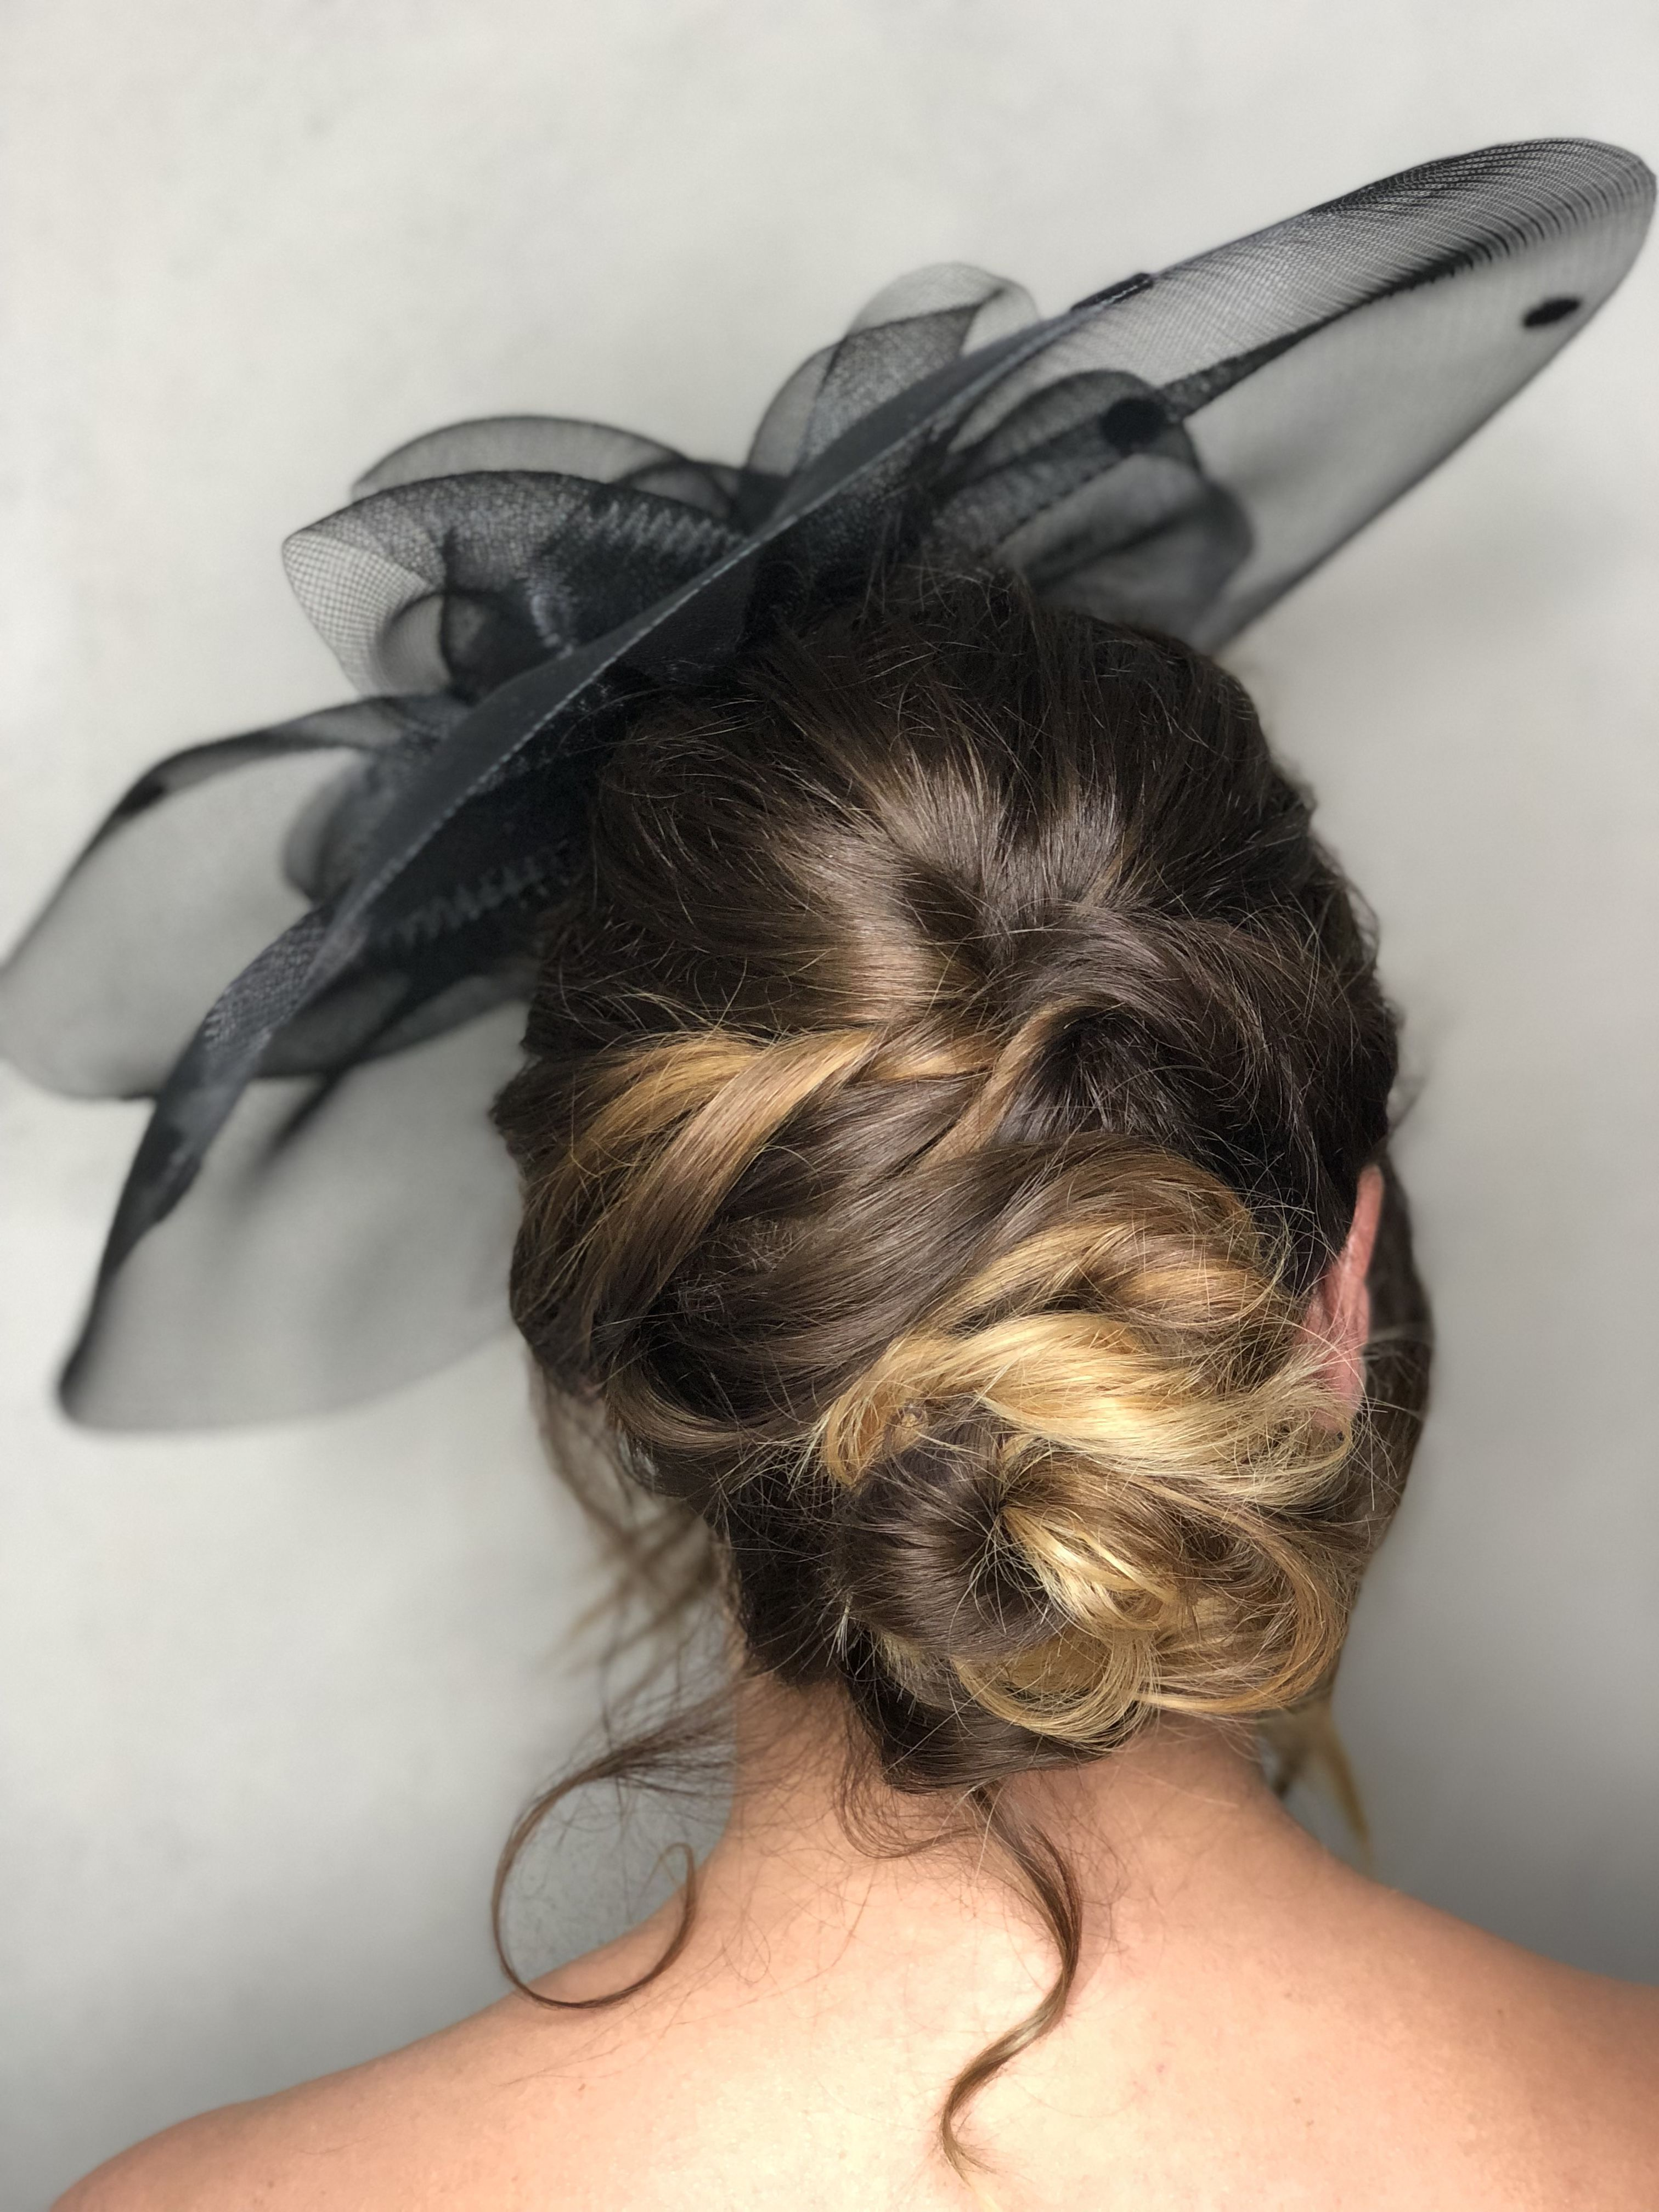 Boho hair up. Low side bun. Textured up do. Hair by me. Wedding guest. Races. #lowsidebuns Boho hair up. Low side bun. Textured up do. Hair by me. Wedding guest. Races. #lowsidebuns Boho hair up. Low side bun. Textured up do. Hair by me. Wedding guest. Races. #lowsidebuns Boho hair up. Low side bun. Textured up do. Hair by me. Wedding guest. Races. #lowsidebuns Boho hair up. Low side bun. Textured up do. Hair by me. Wedding guest. Races. #lowsidebuns Boho hair up. Low side bun. Textured up do. H #lowsidebuns